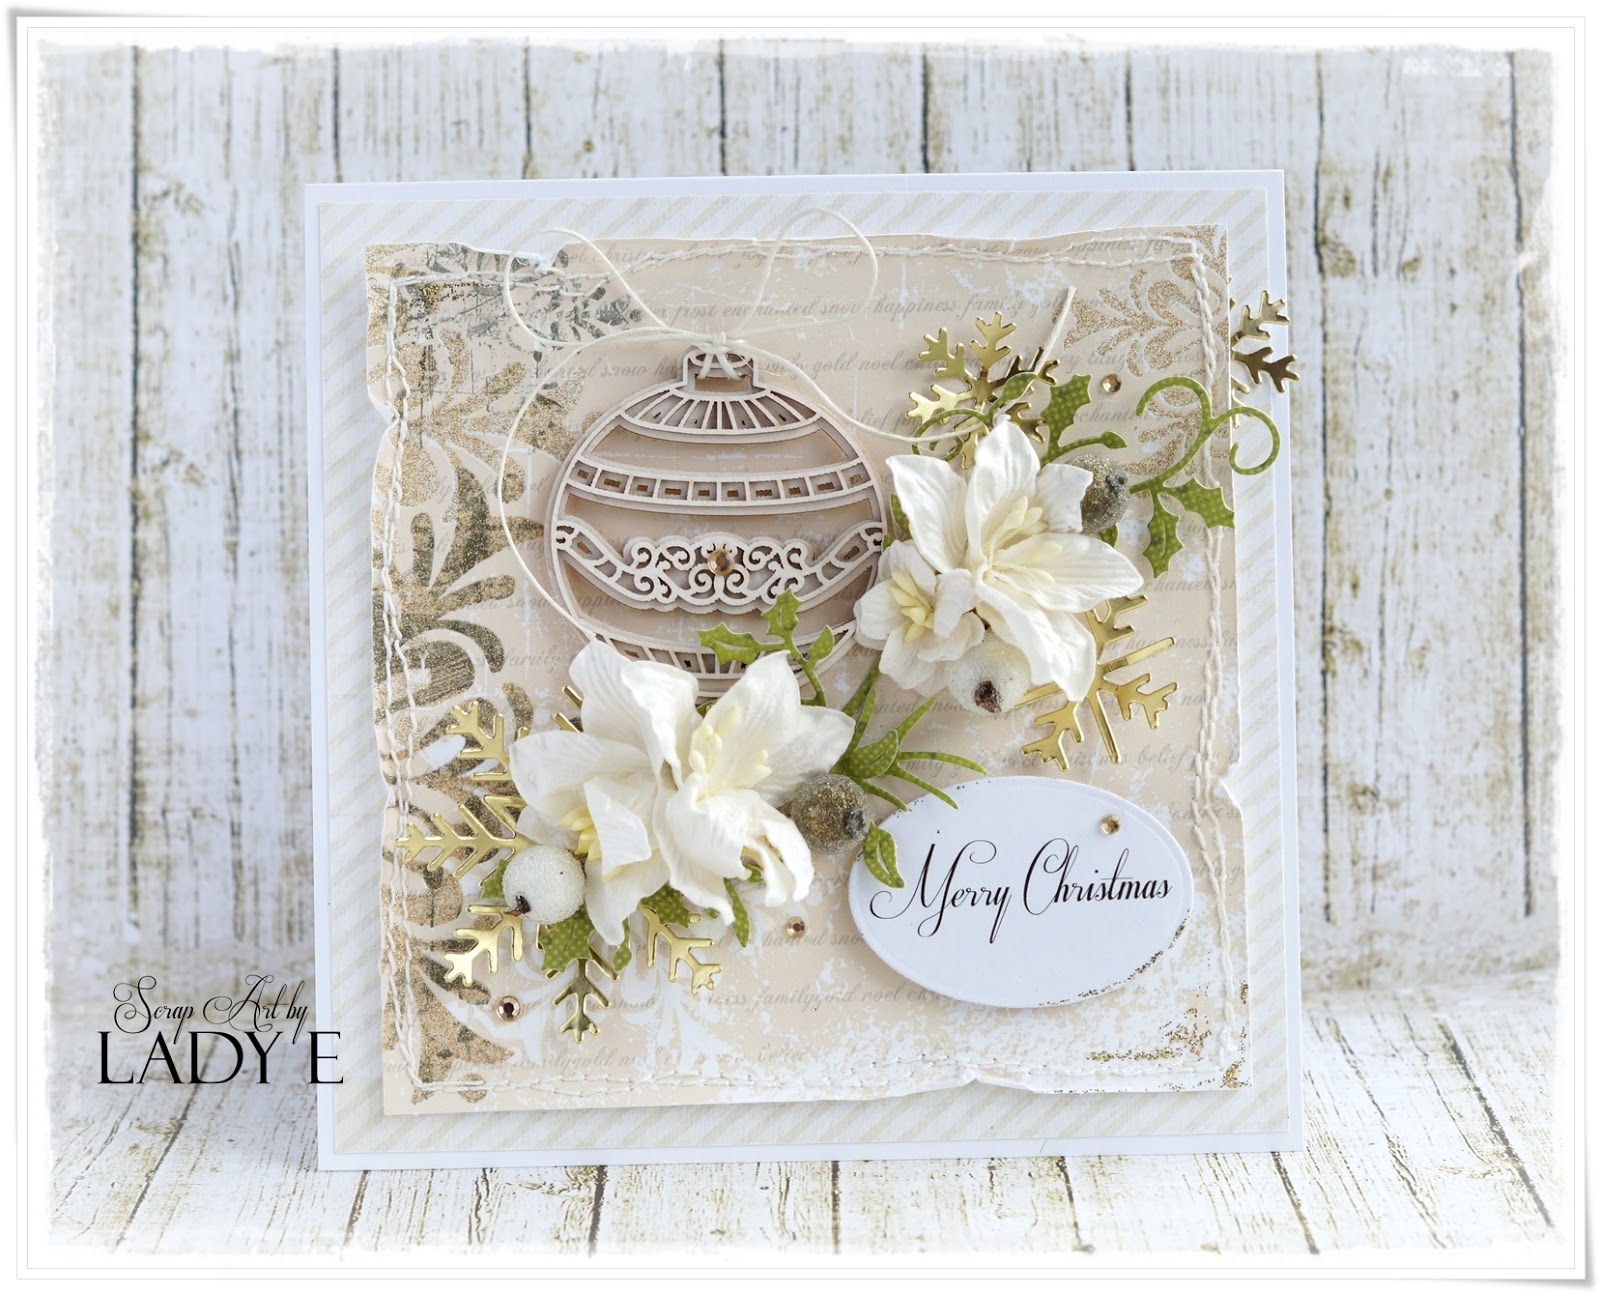 Scrap and Craft: Christmas Card With Touch of Gold